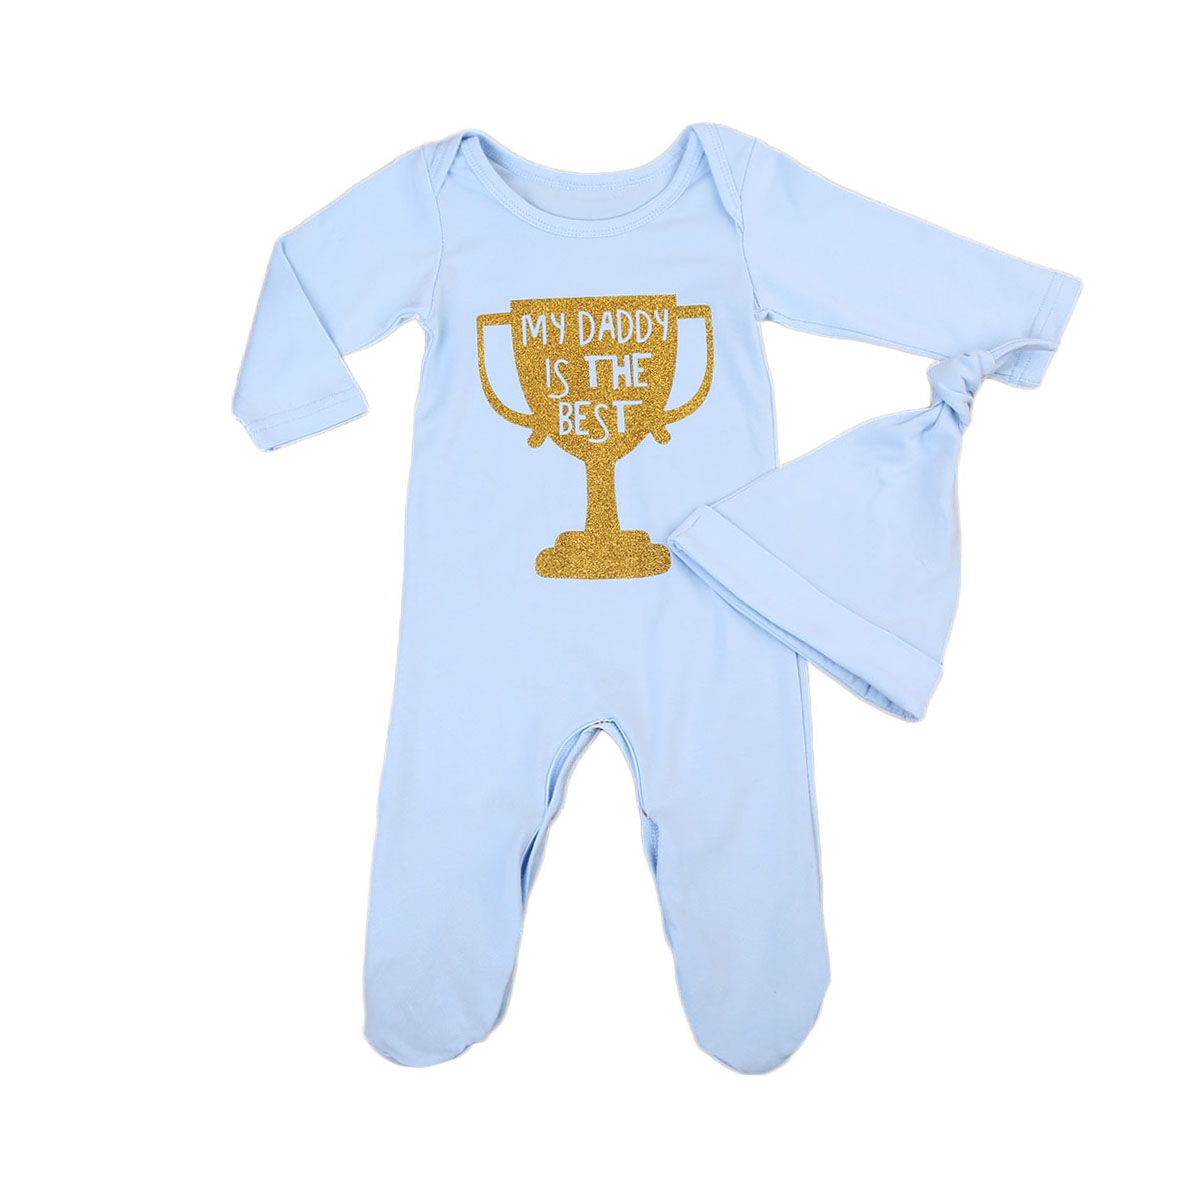 2PCs Toddler Baby Boys Romper 2017 New Autumn Spring Long Sleeve Romper+Hat Brief Casual Jumpsuit Outfits Clothes Set puseky 2017 infant romper baby boys girls jumpsuit newborn bebe clothing hooded toddler baby clothes cute panda romper costumes